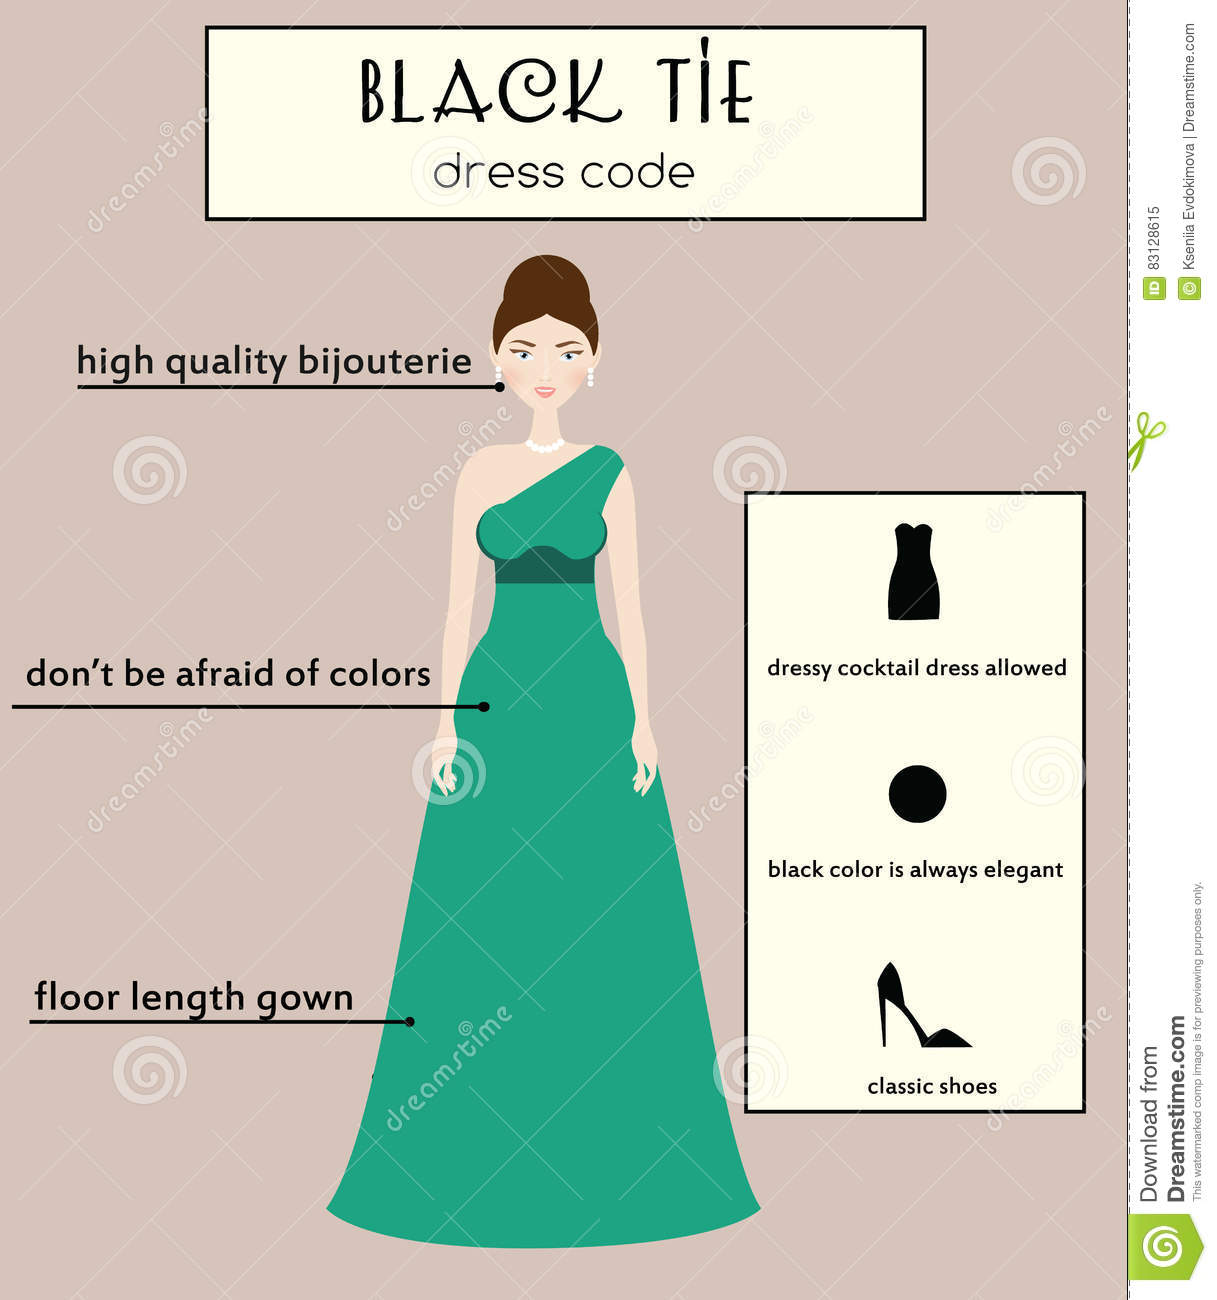 Luxury White-tie Evening Dress Code Challenges Women More Than Men